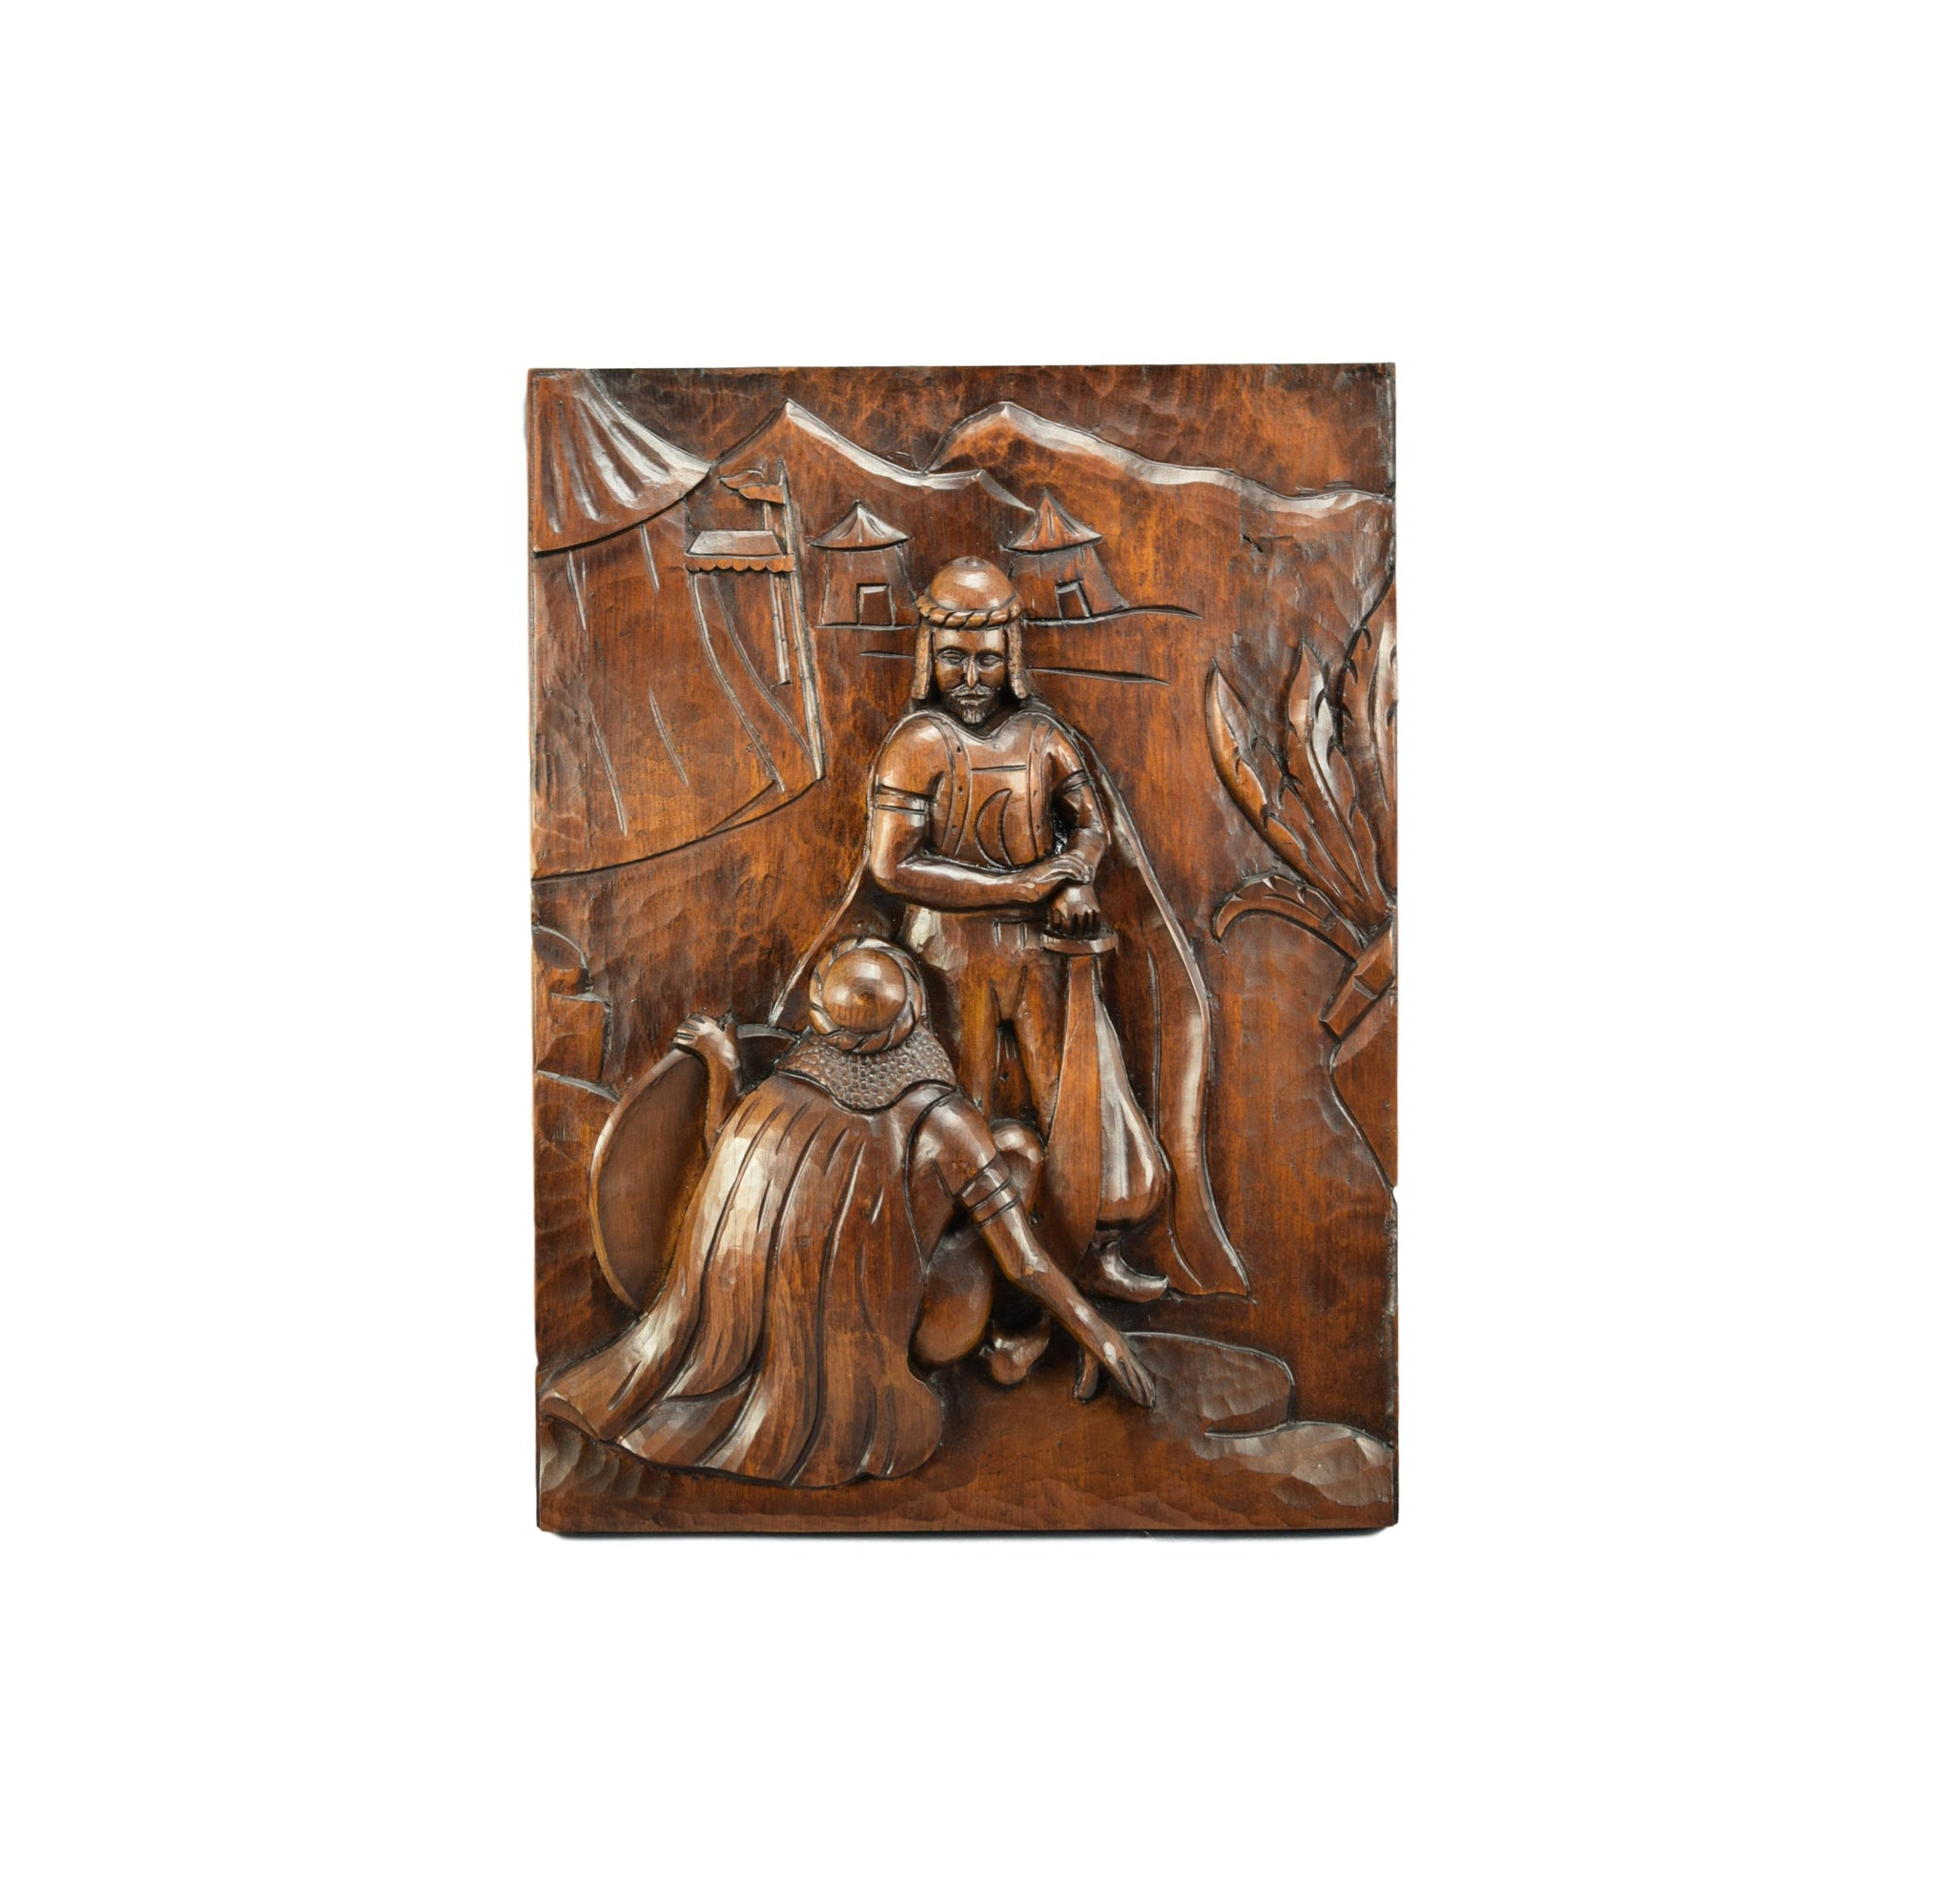 French Large Thick Black Forest Gothic Carved Wood Wall Panel Door of Middle Ages Moors Armor Knight with Sword